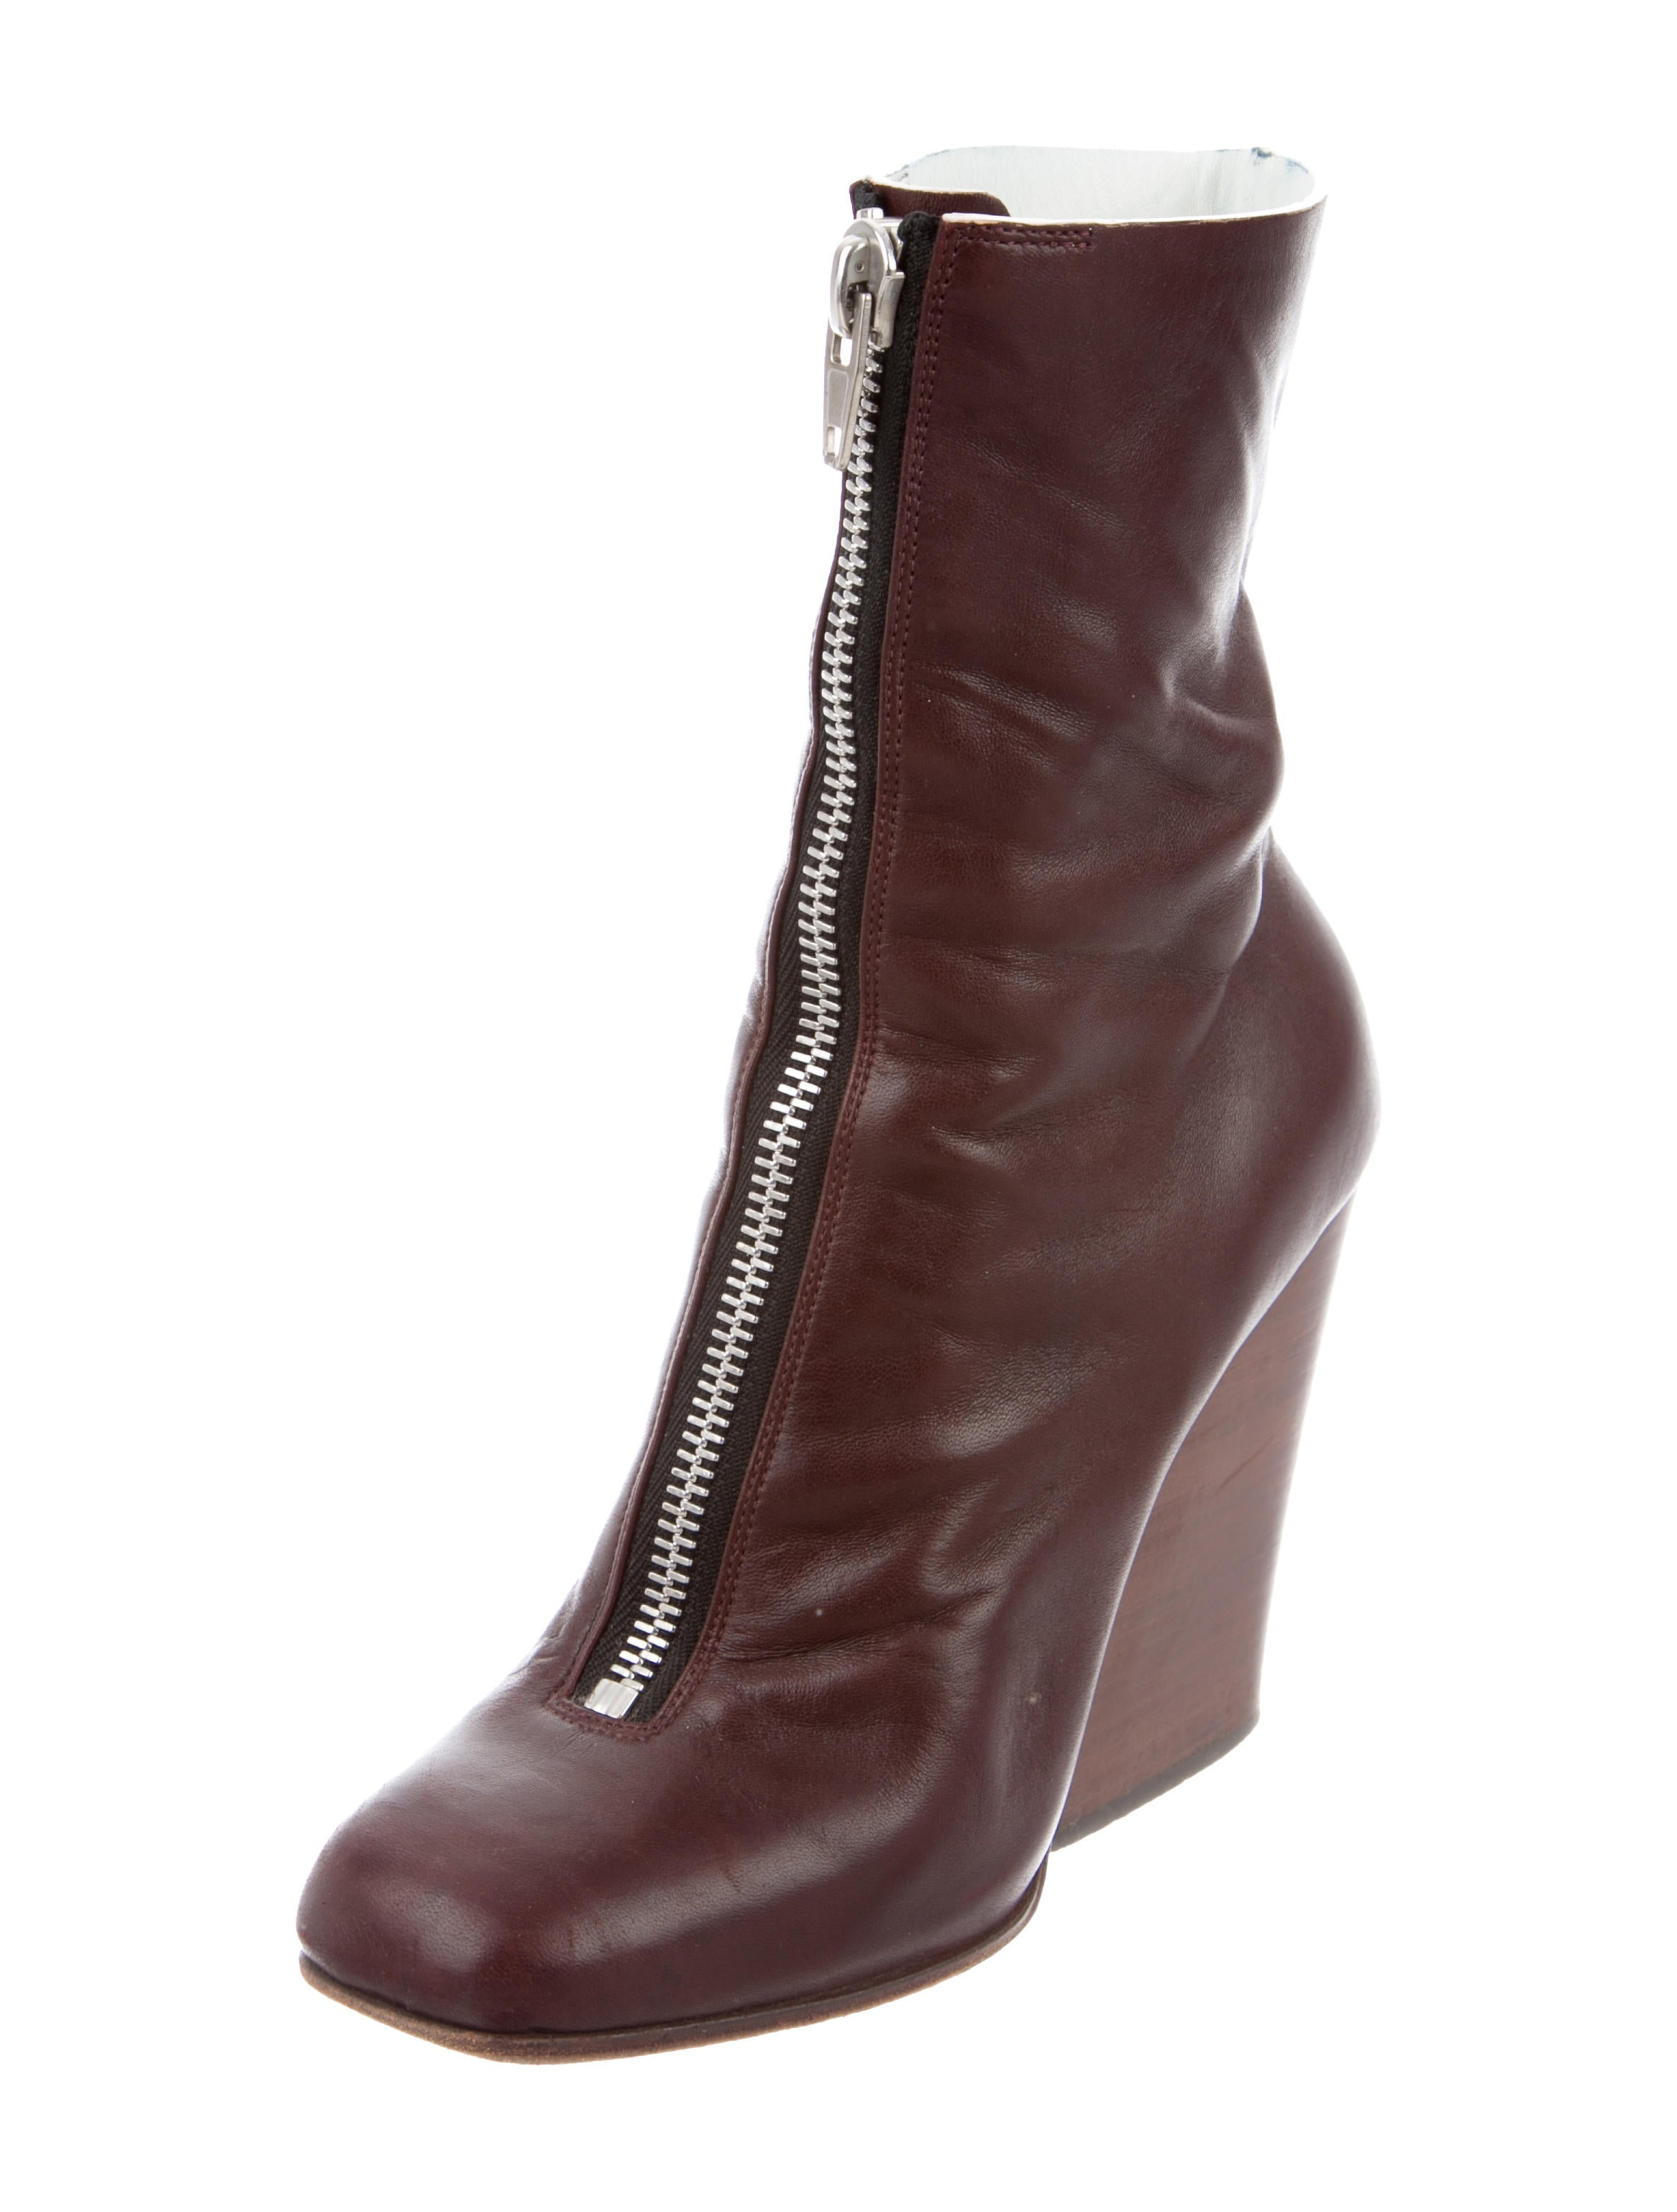 c 233 line leather square toe ankle boots shoes cel33930